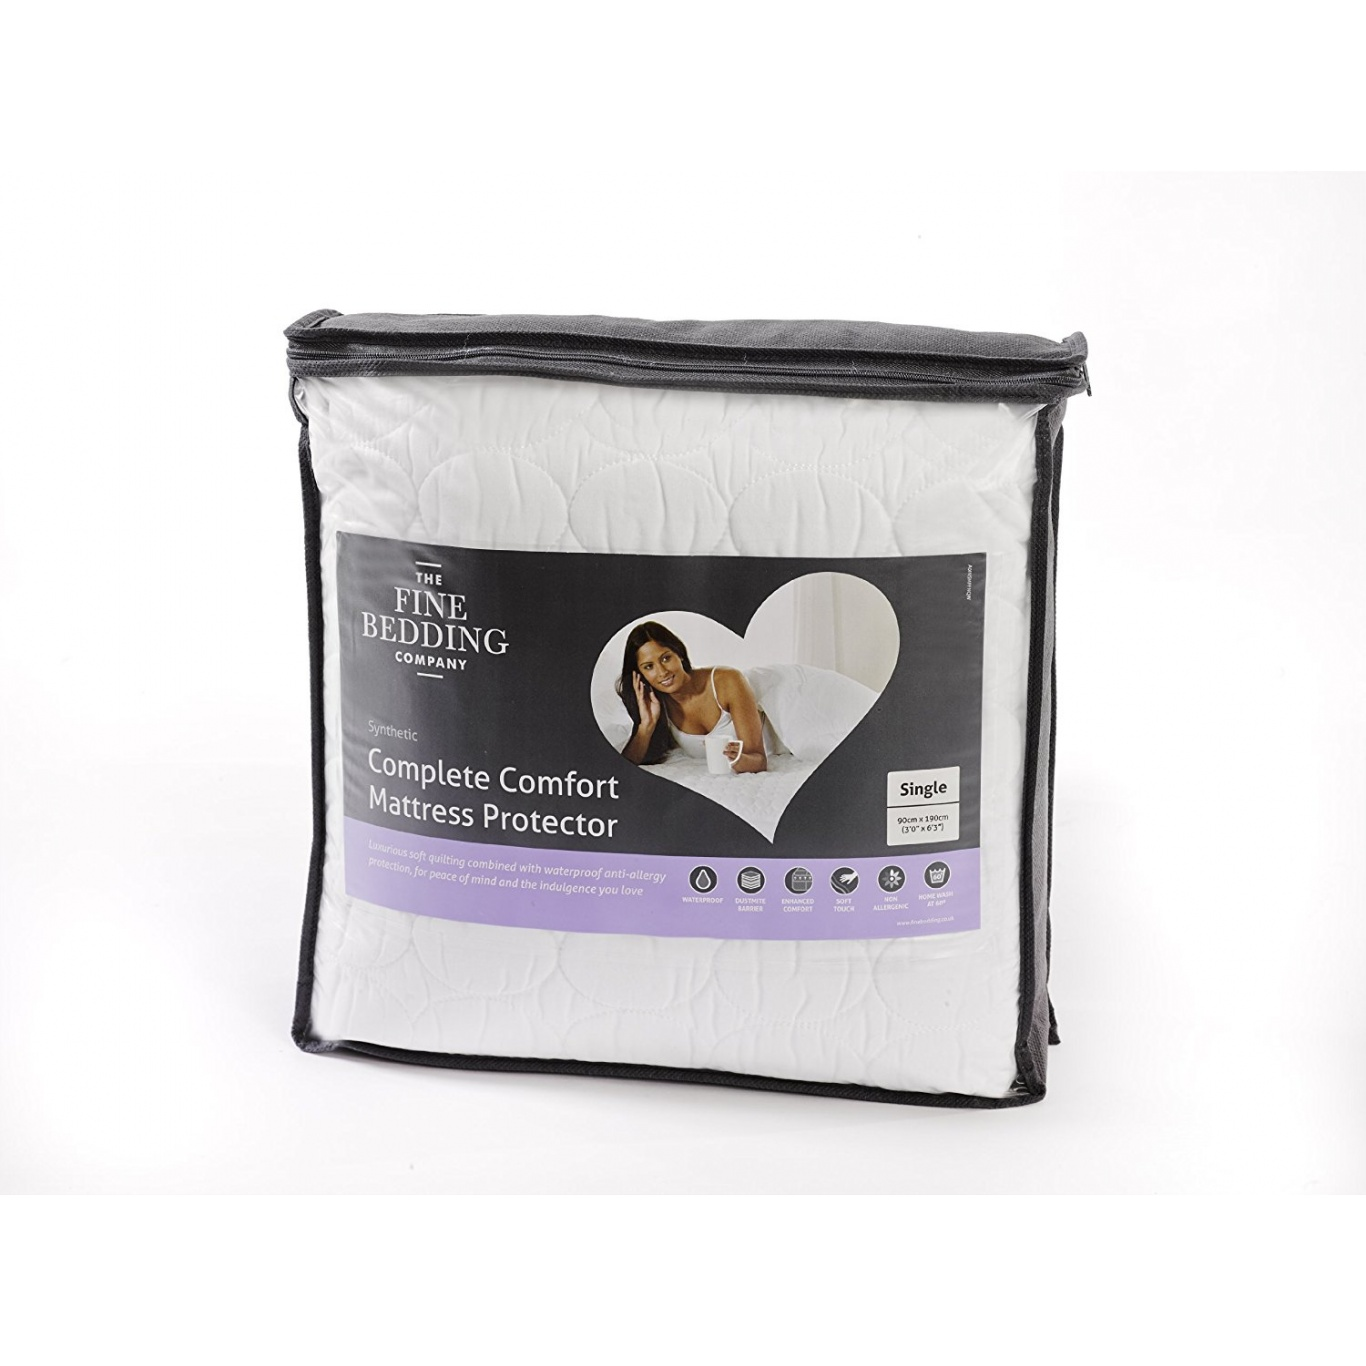 Image of Quilted Luxury Waterproof Single Mattress Protector